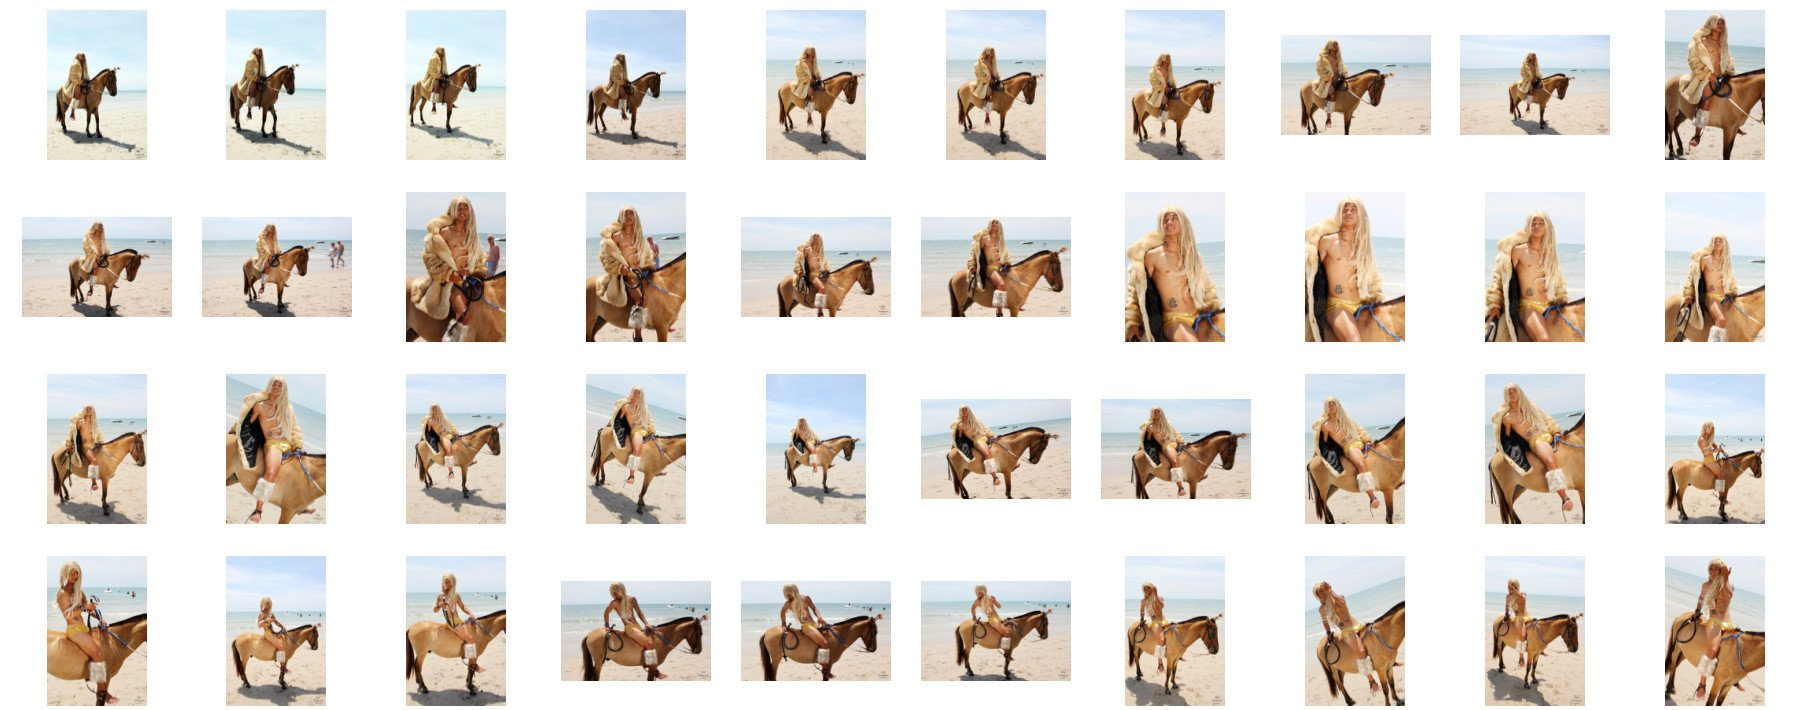 David in Fur Coat Riding Bareback on Golden Pony, Part 3 - Riding.Vision